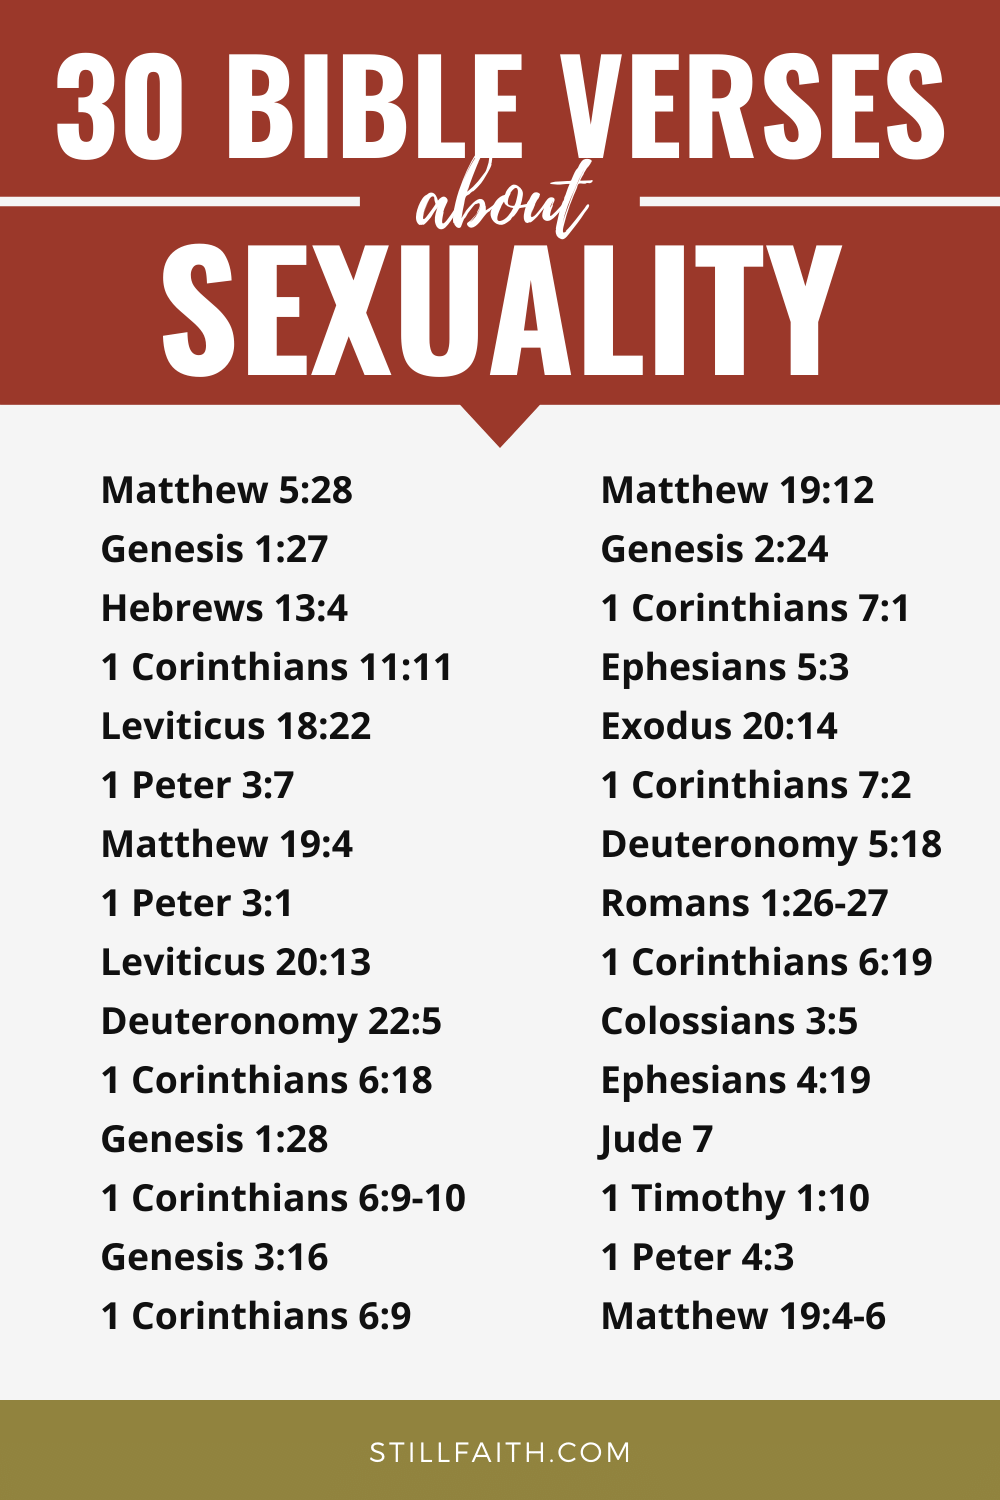 102 Bible Verses about Sexuality